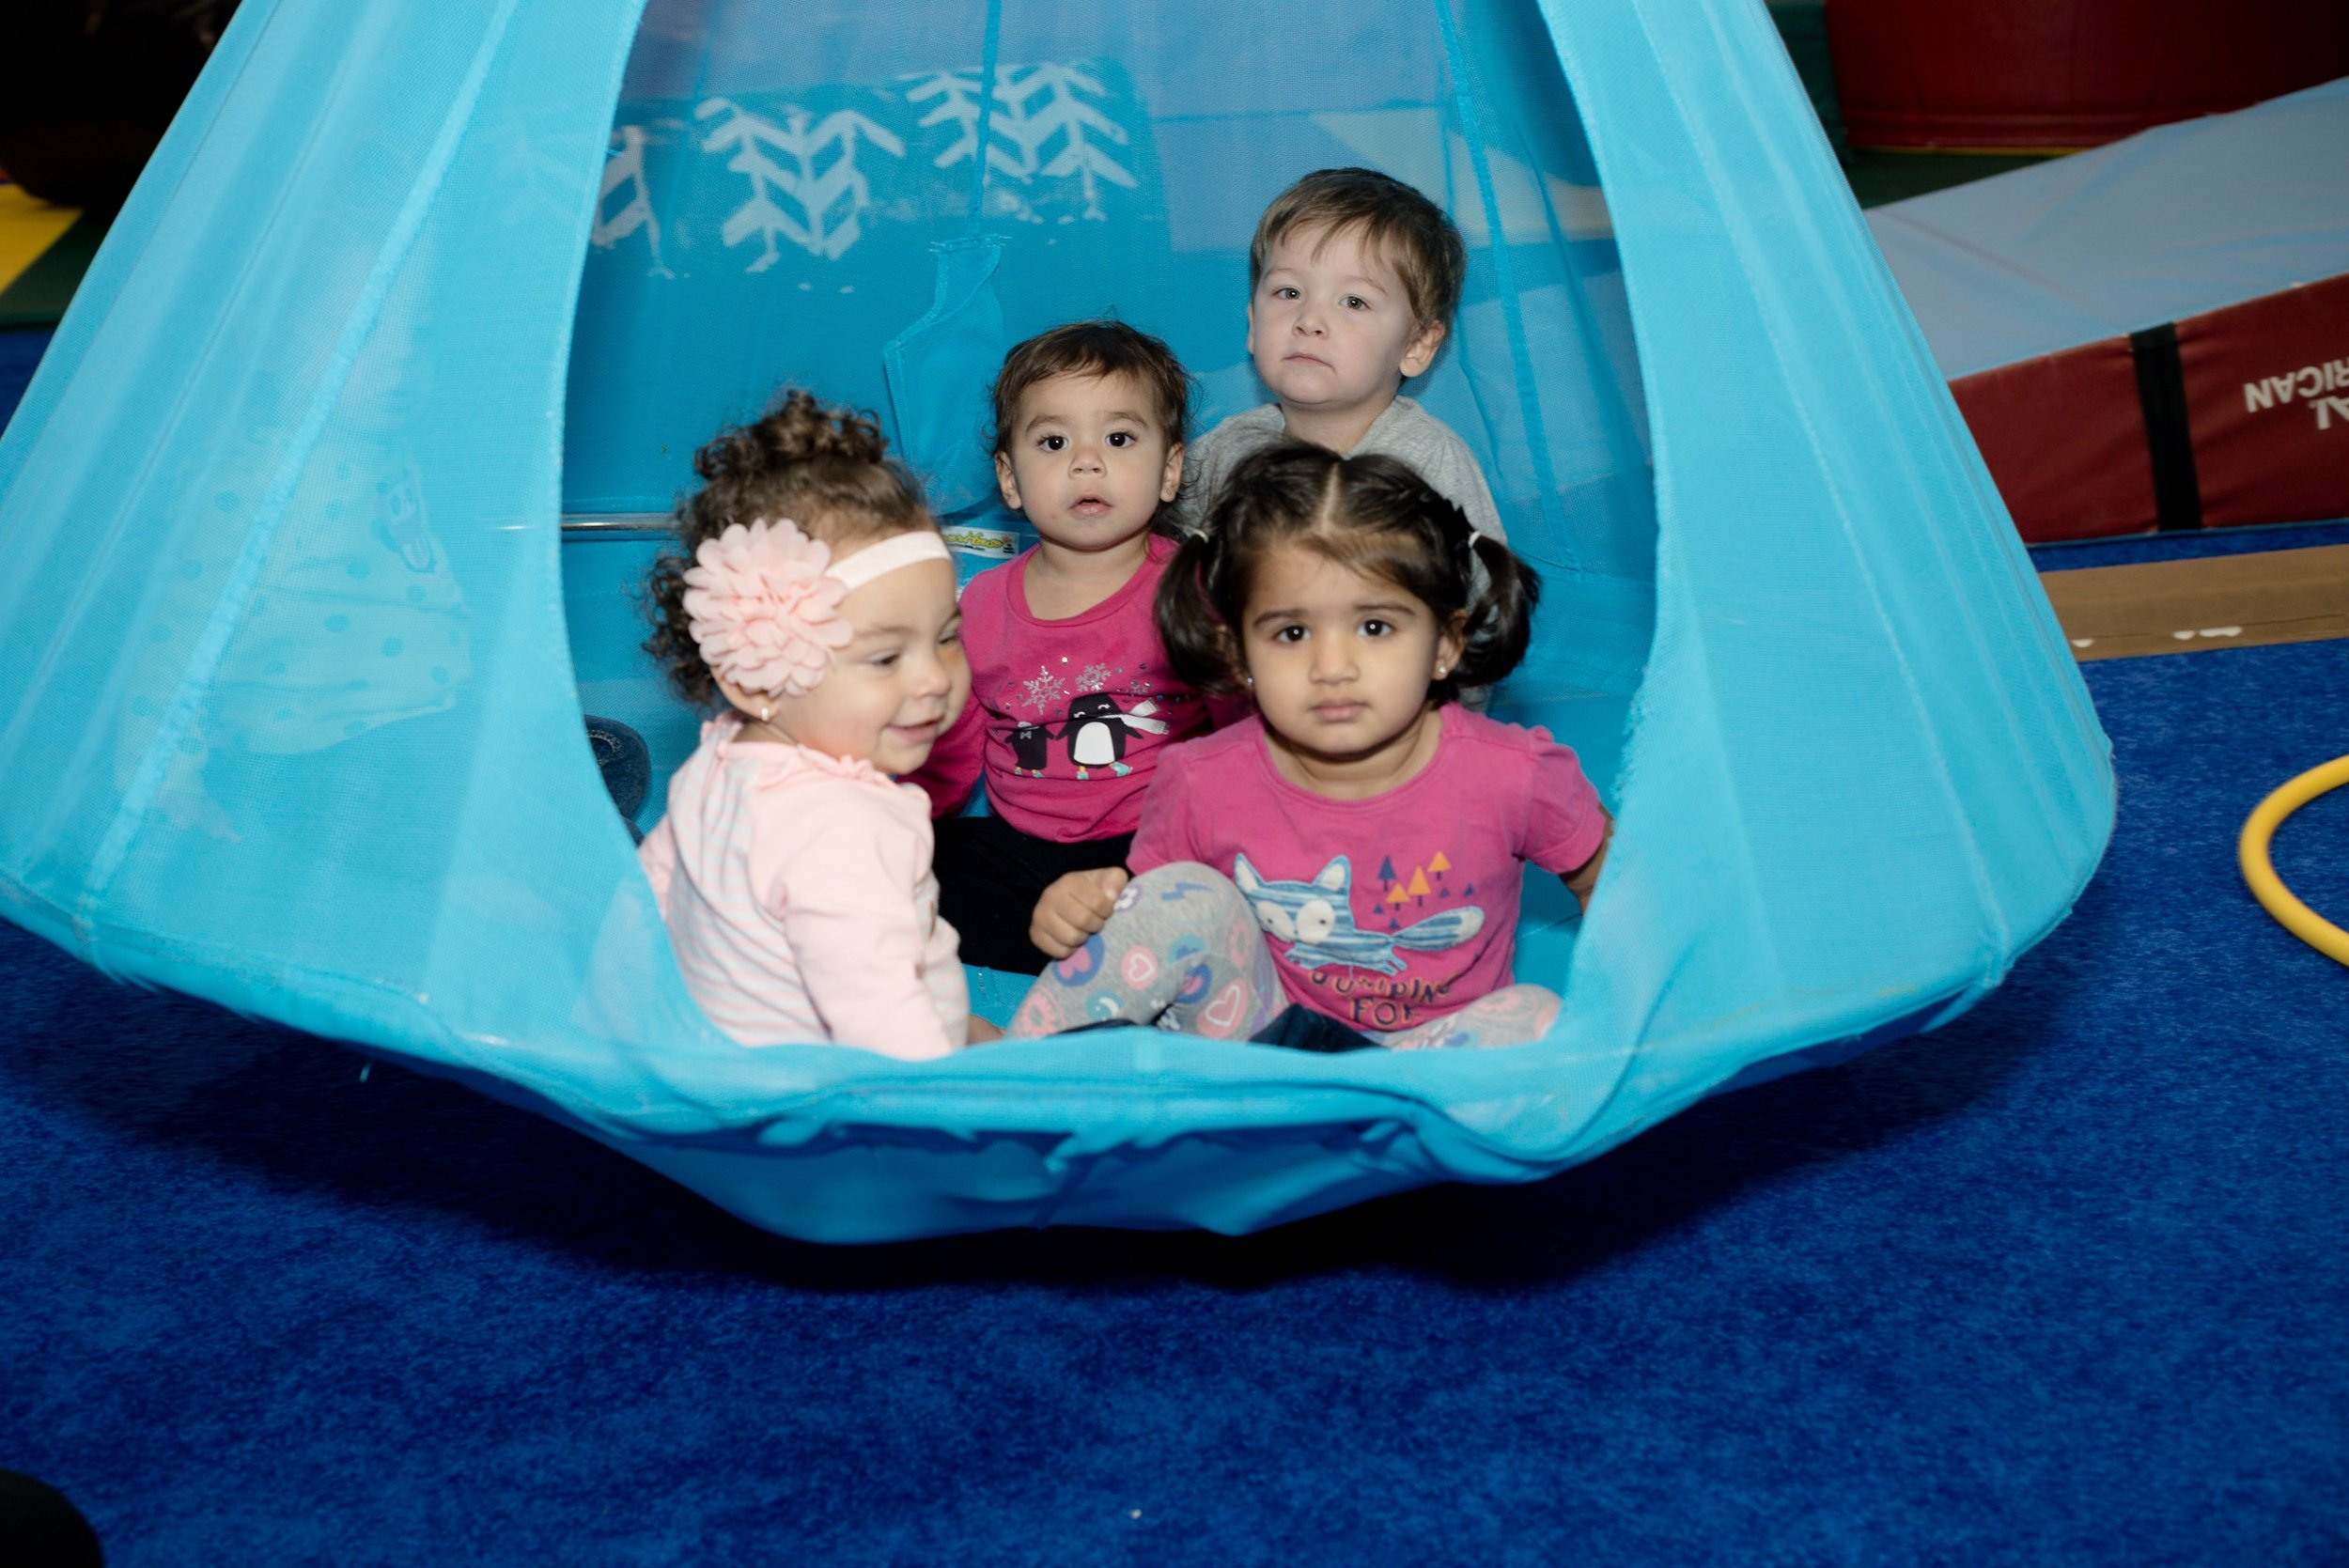 Explorers | 22 - 36 Mo - With parent, we climb, jump, balance, throw, and so much more. A wonderful experience for you and your child. Teachers take special care to show adults proper spotting techniques so tumbling can be practiced at home. Play with friends on our special toddler gym equipment all to a new theme activity each week!